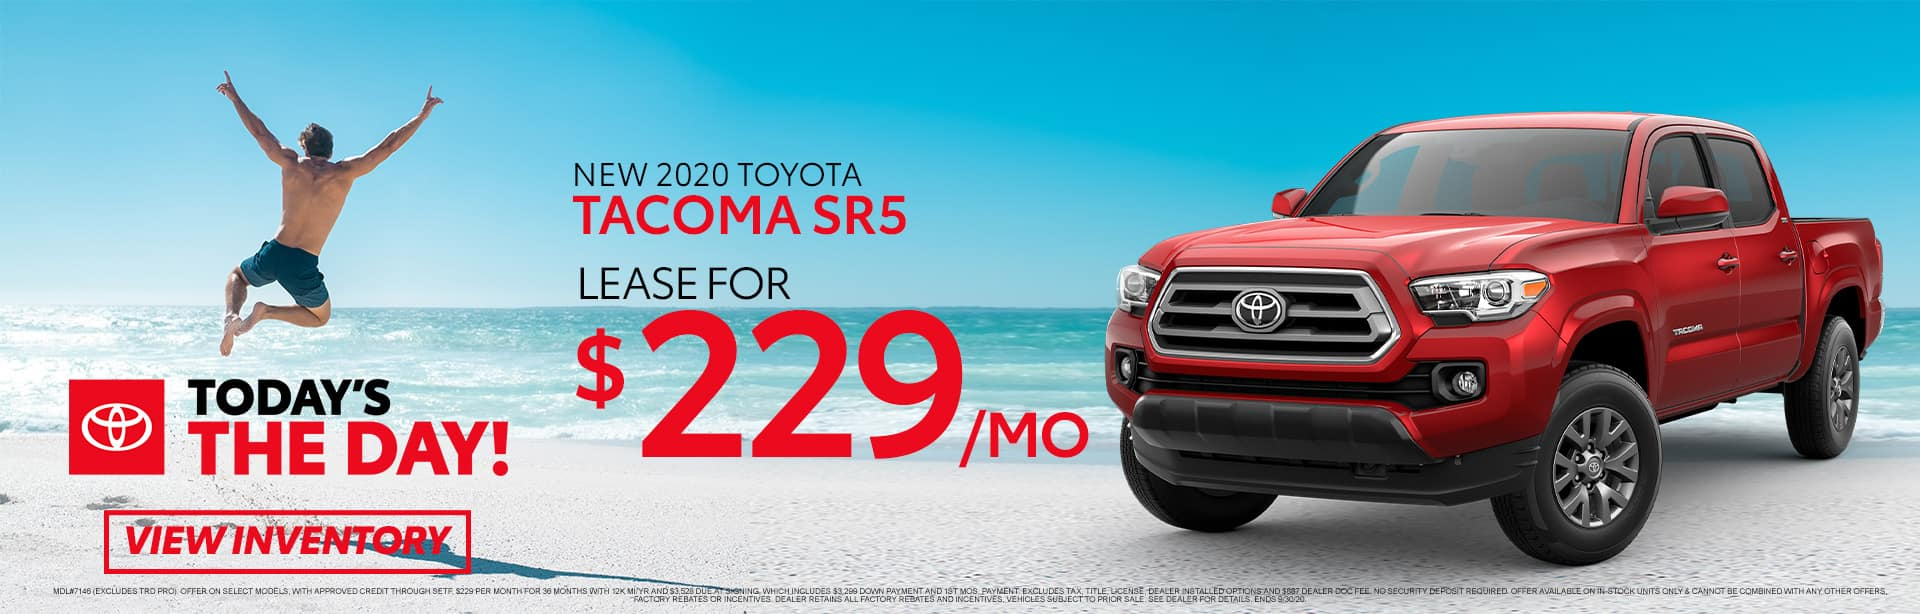 New 2020 Toyota Tacoma at Toyota of Fort Walton Beach!